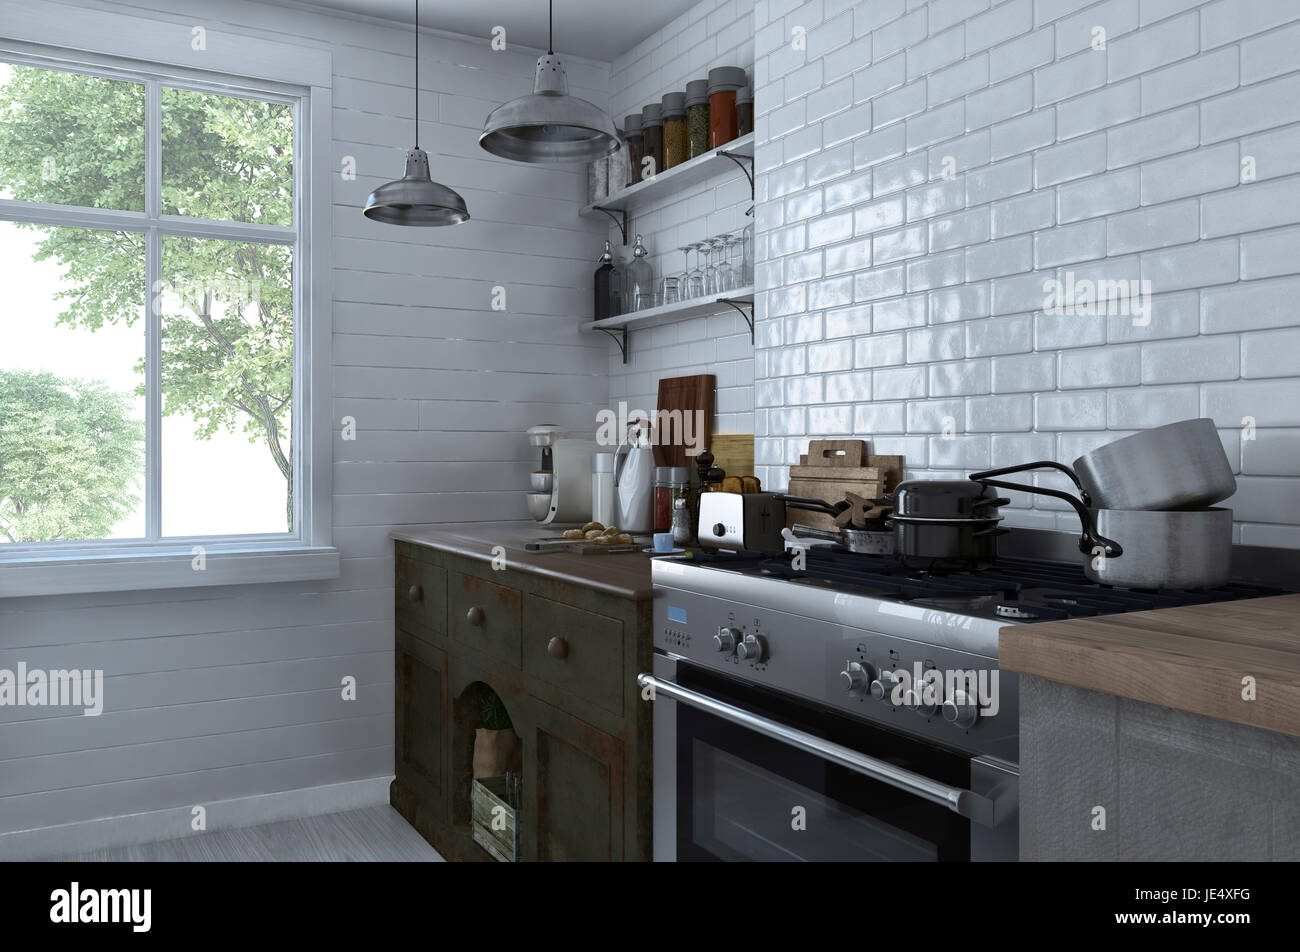 Small compact kitchen interior with stove and cabinets stacked with ...